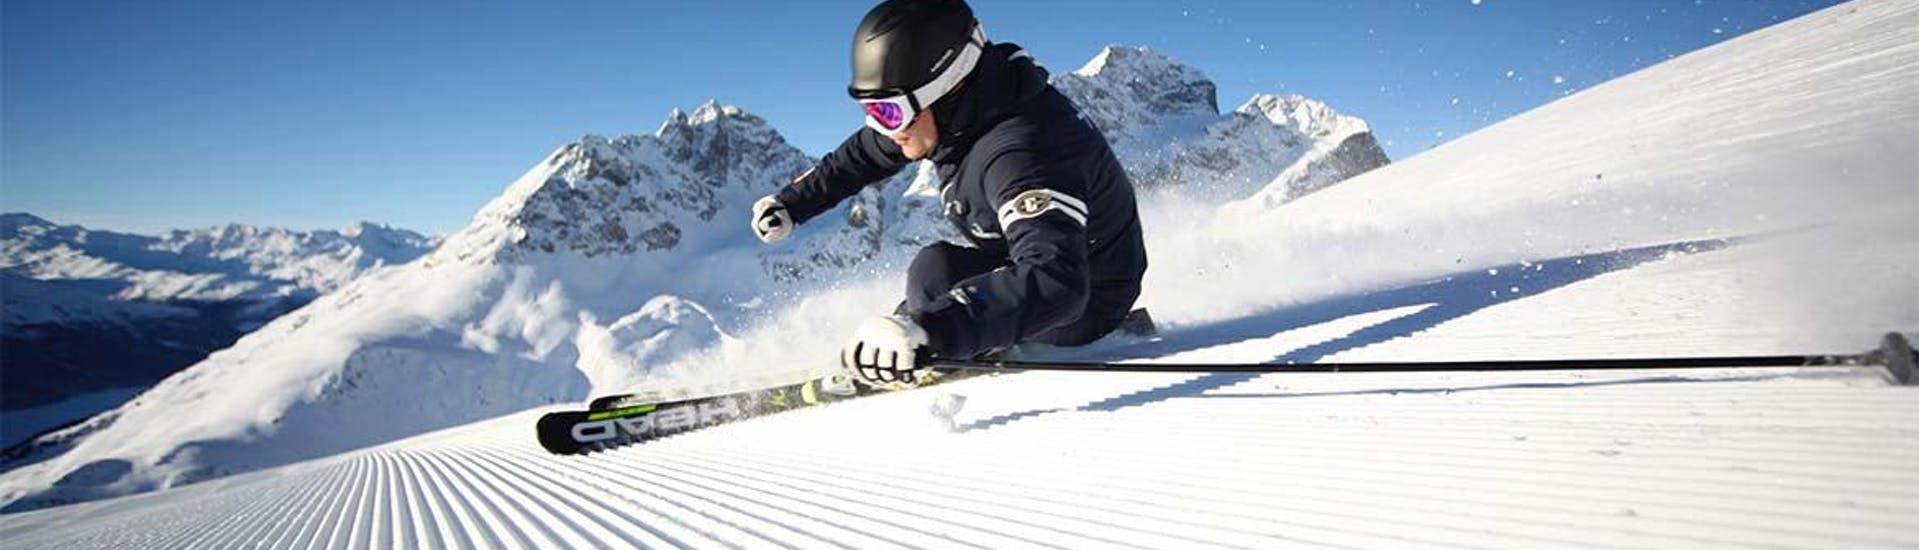 "Private Ski Lessons for Adults of All Levels ""Full Day"""